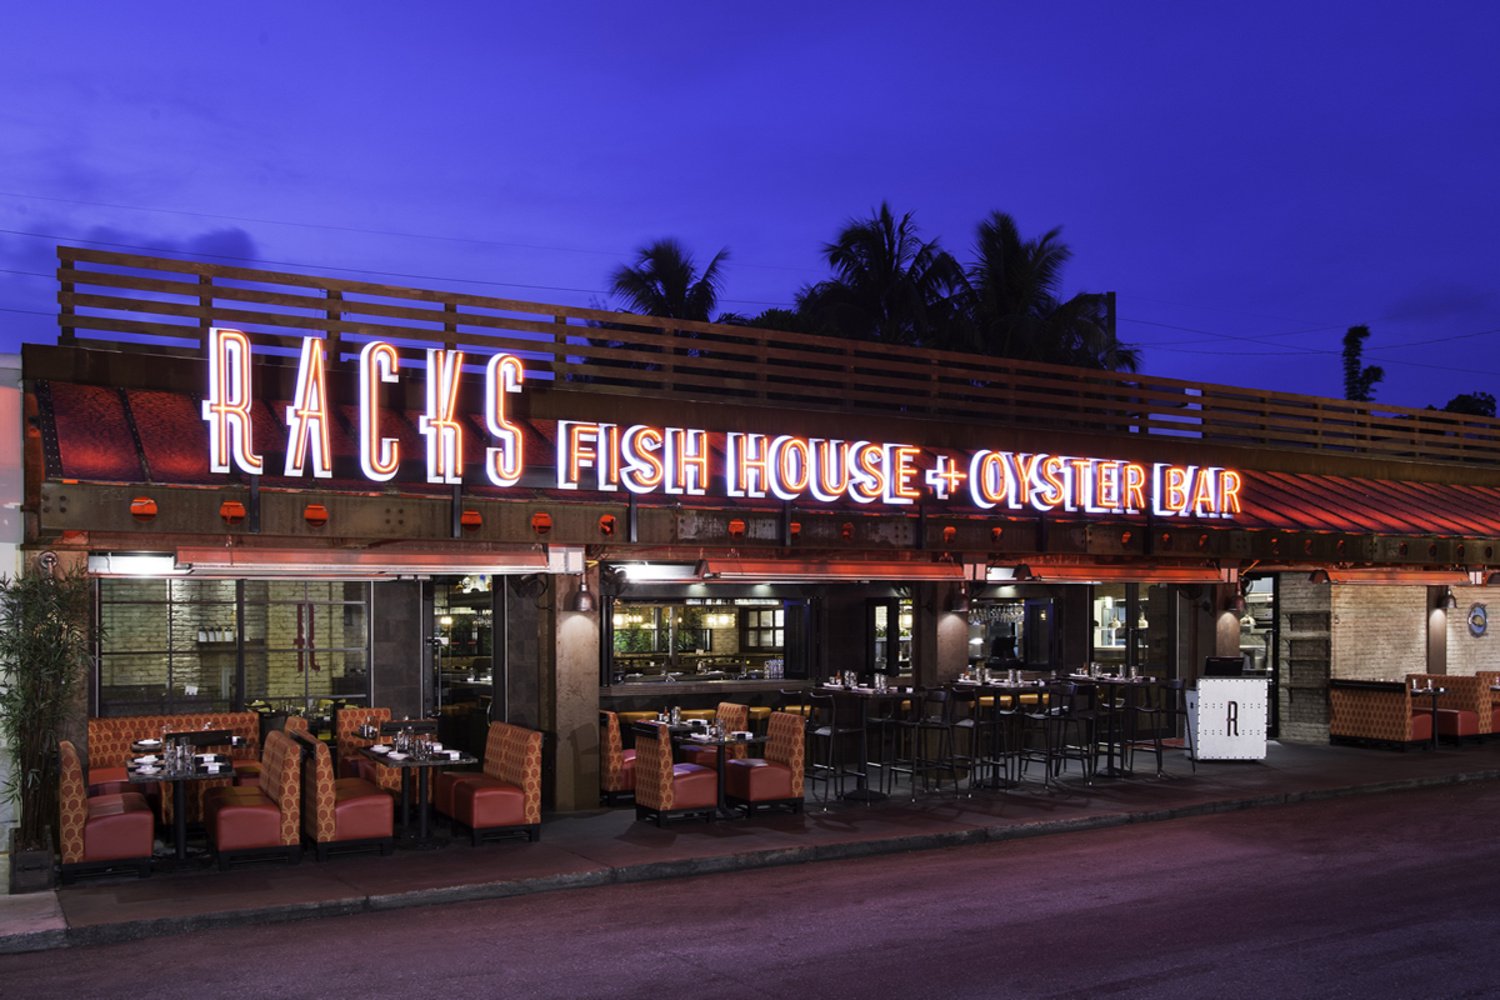 Racks Fish House + Oyster Bar